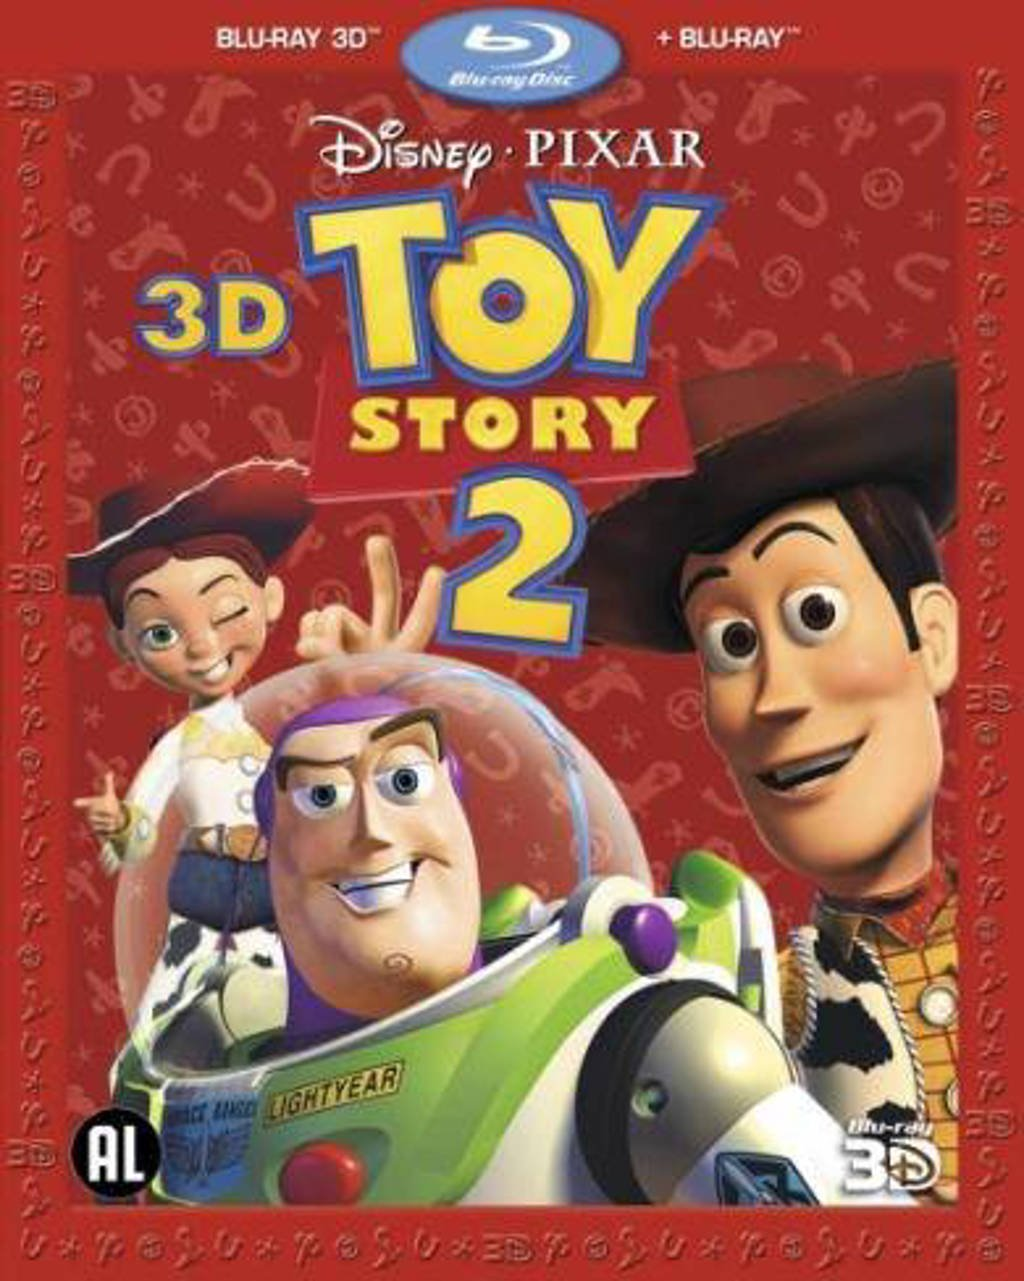 Toy story 2 (3D+2D) (Blu-ray)